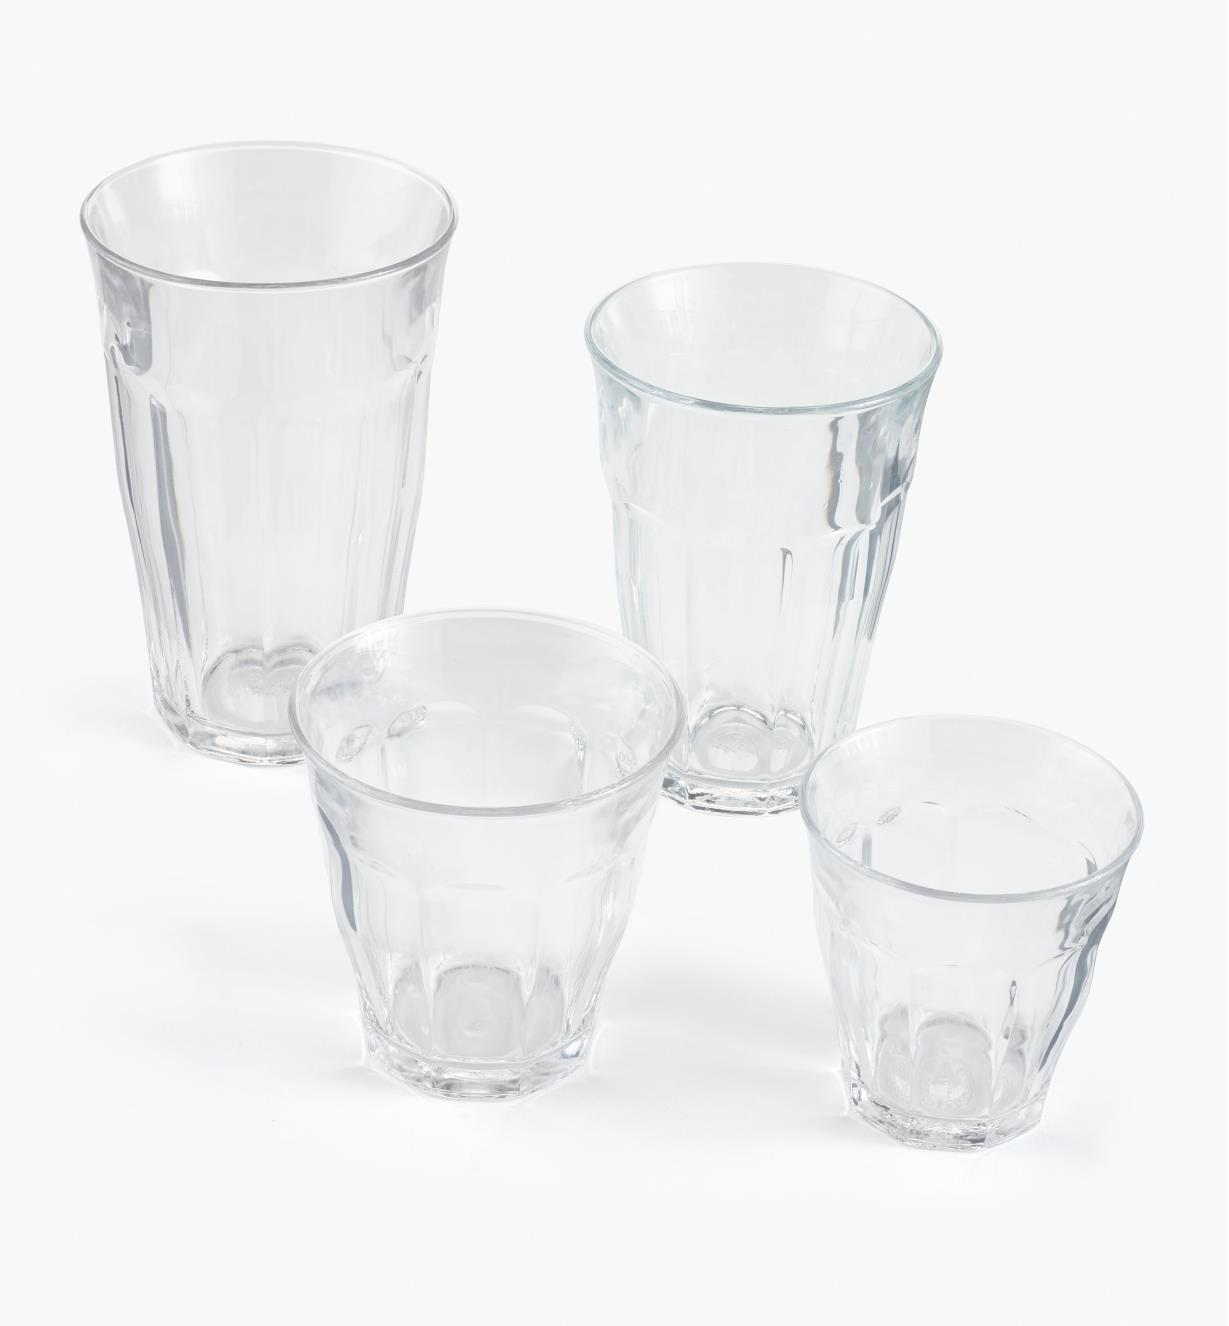 44K0809 - Set of 24 Duralex Picardie Glasses